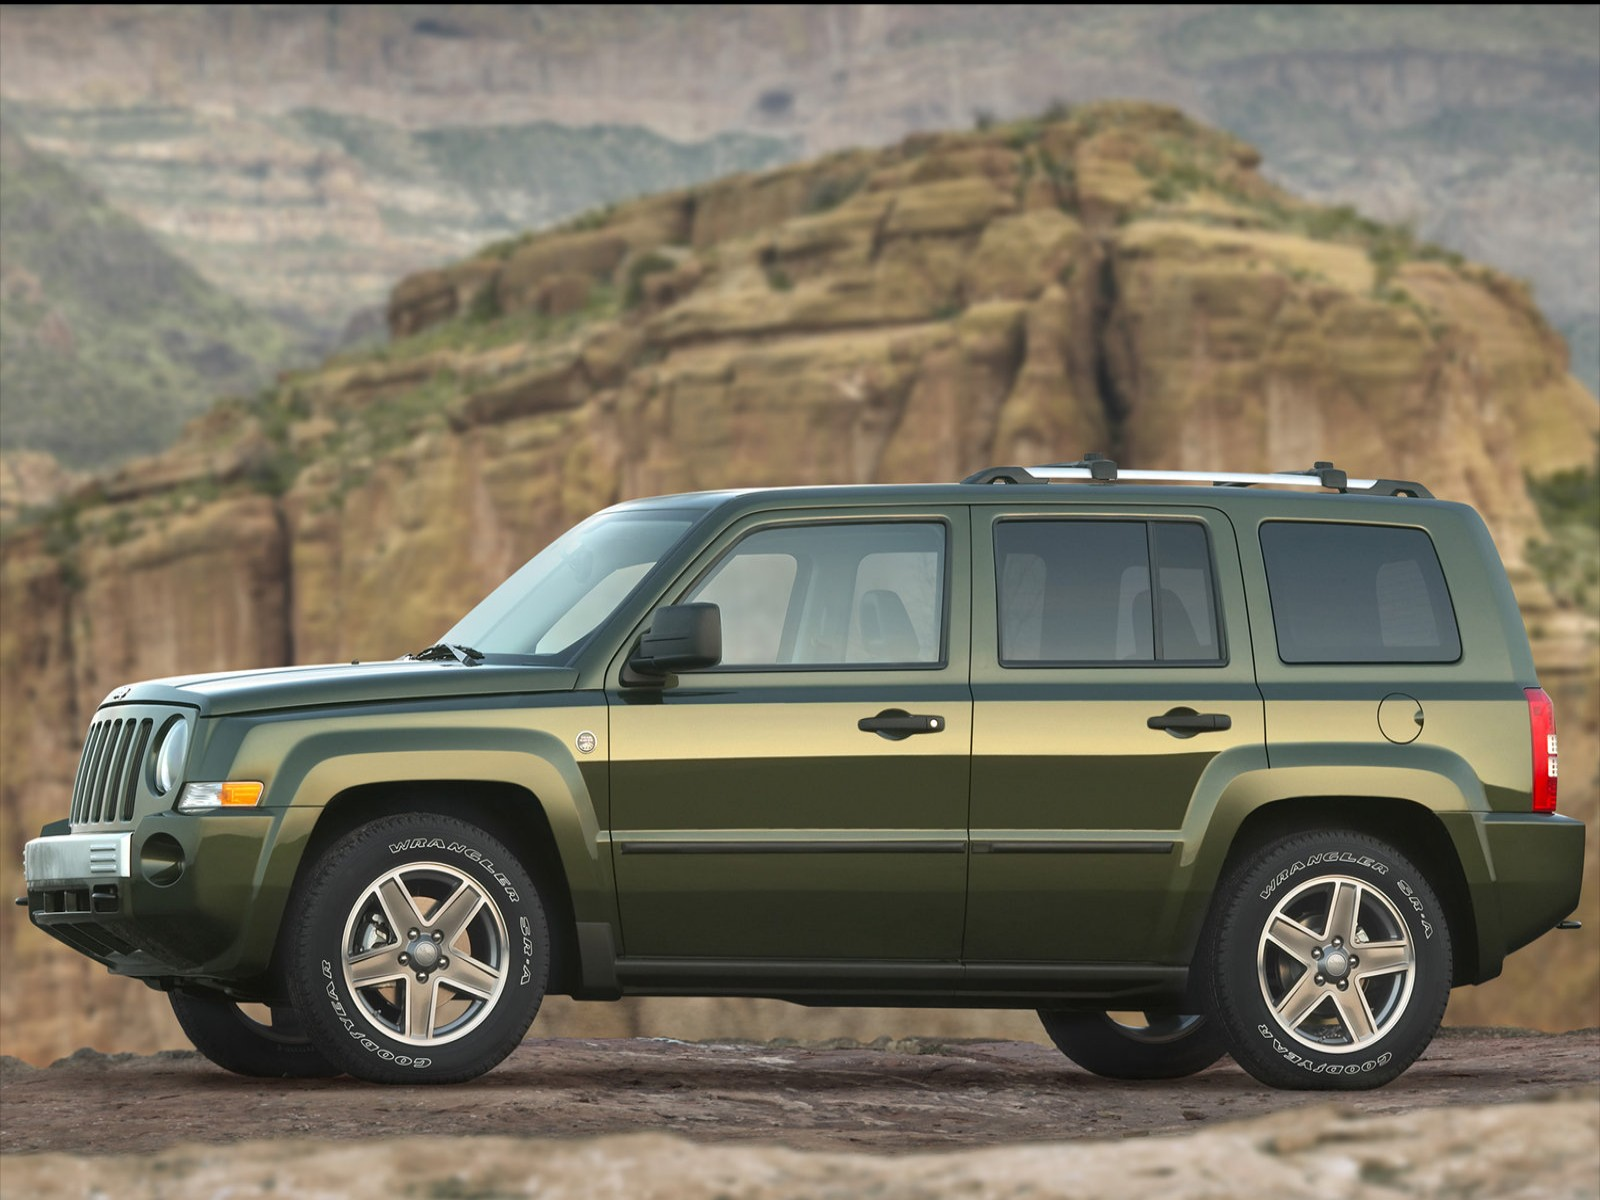 Jeep Trail Rated Car Pictures: Jeep Patriot 2007